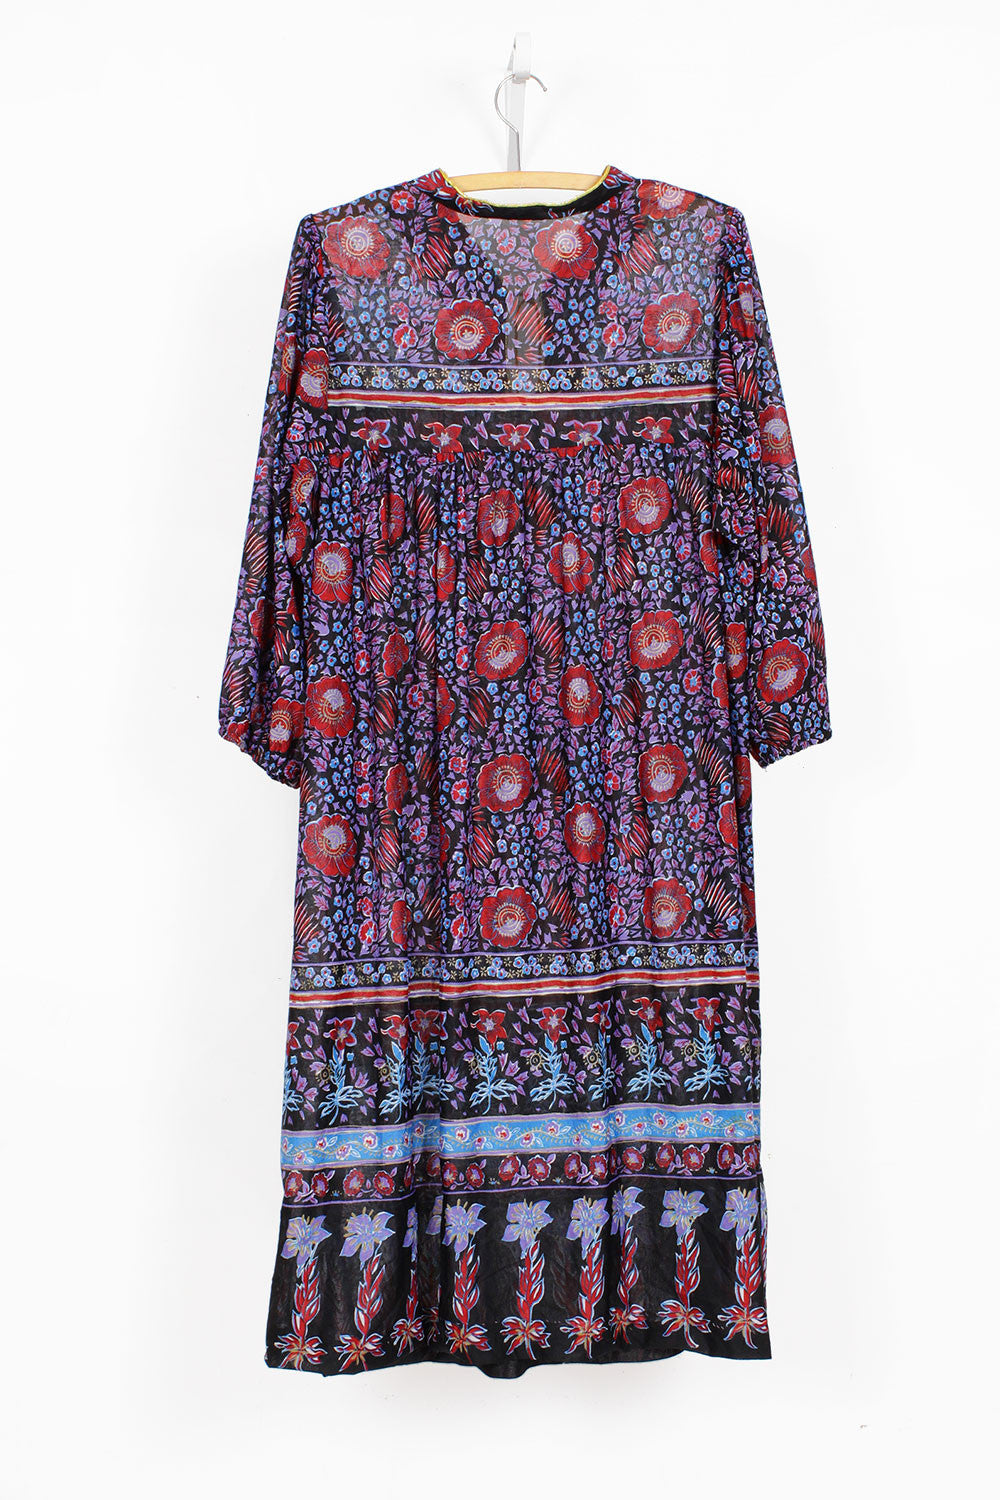 70s Indian Poppy Dress S/M/L